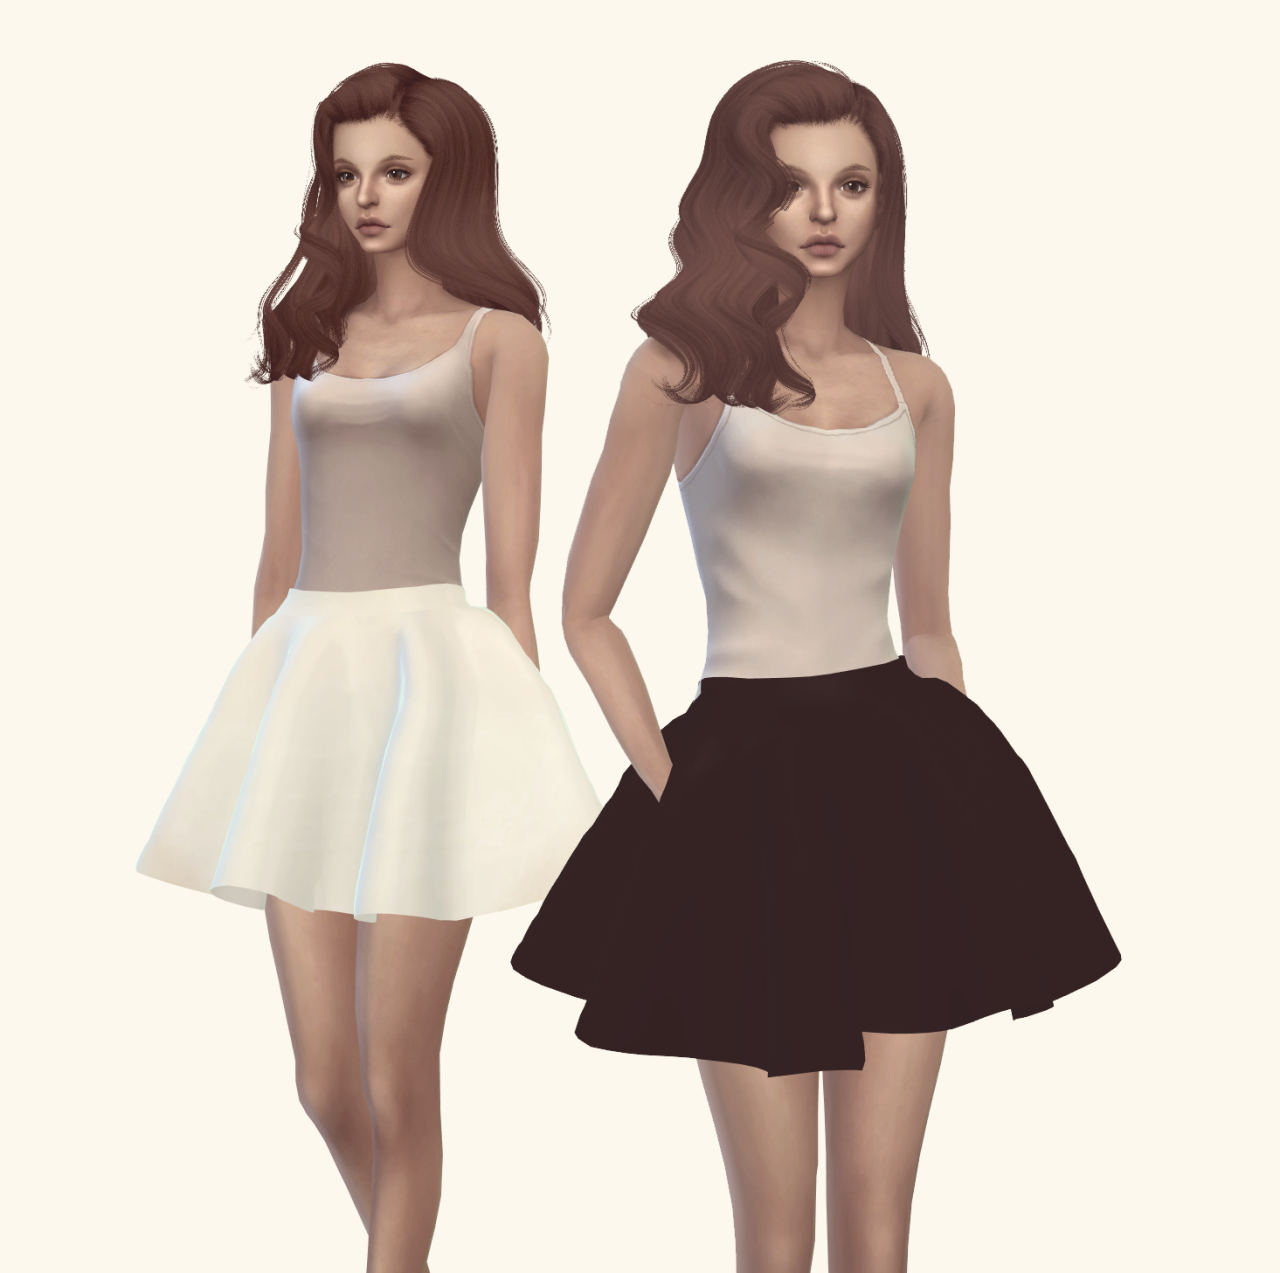 Dress Recolors by VintageySims